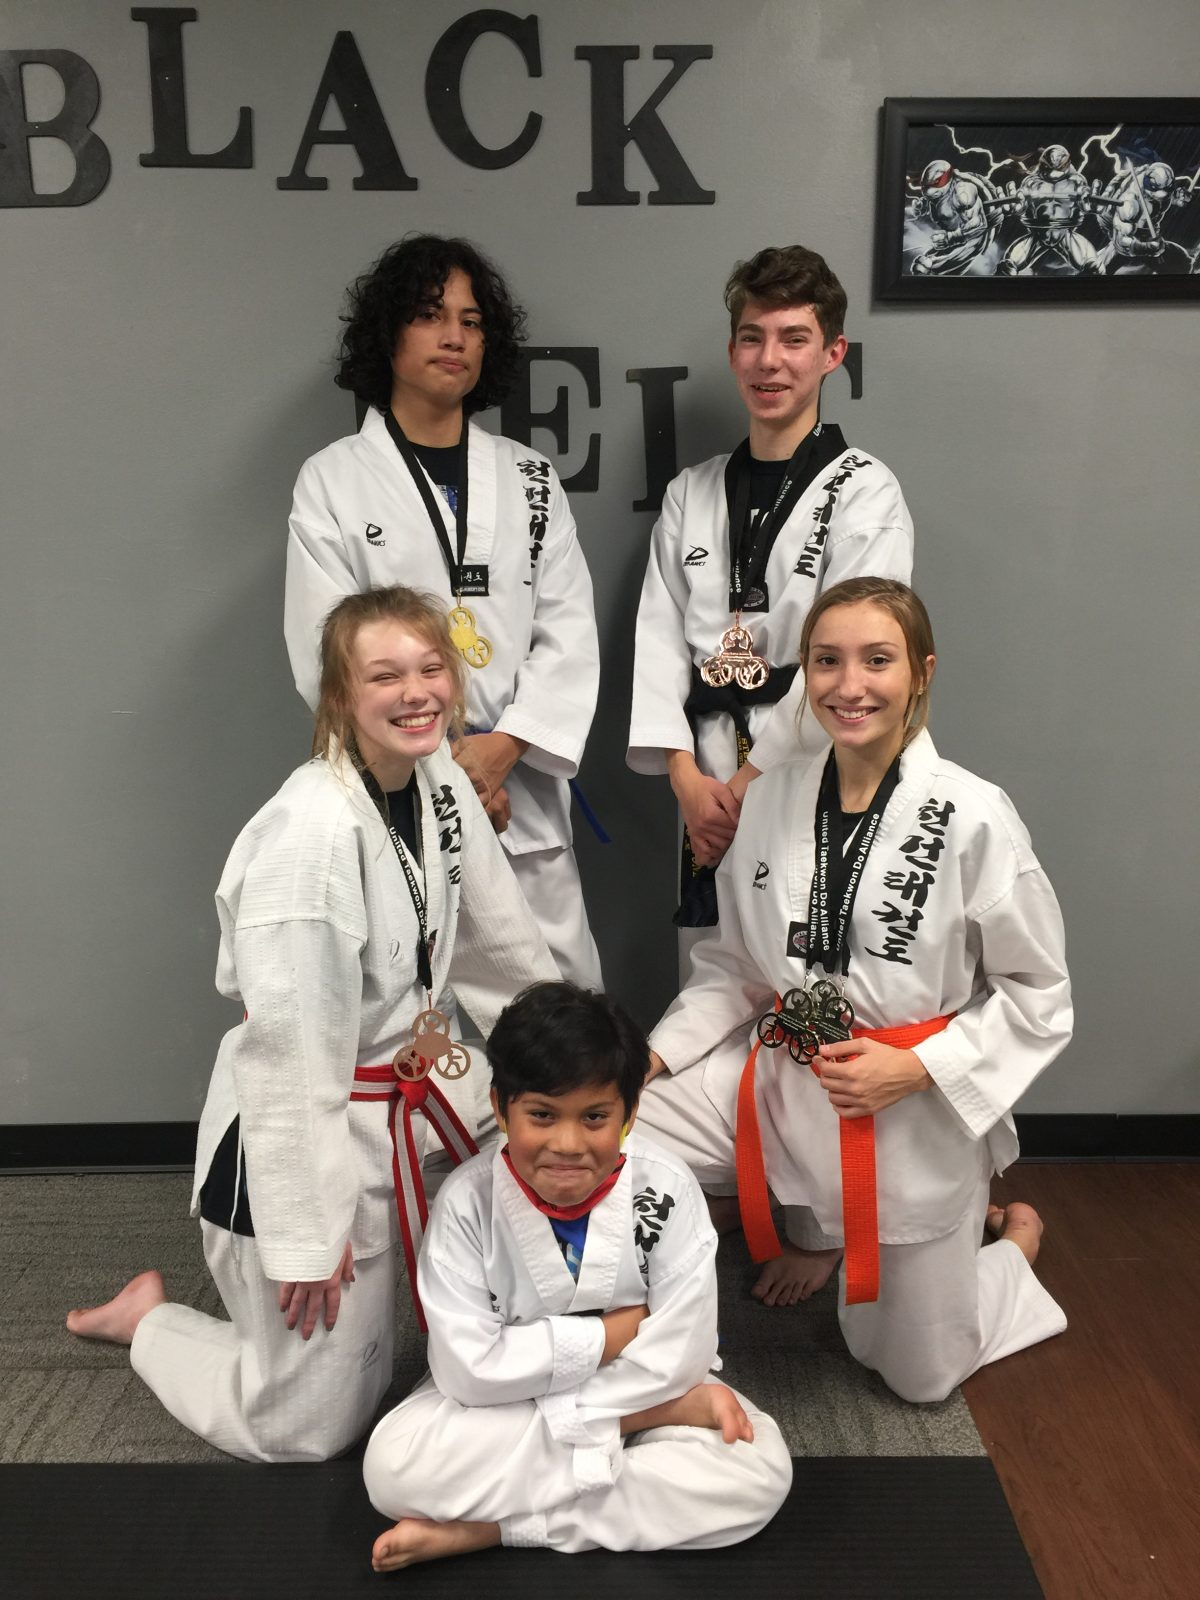 Red Cape Martial Arts competitors pose with their medals from the UTA 2020 National Championships. Front: Sebastian Alvarez; 2nd Row L-R: Romé Bruce, Peyten Cooper; 3rd Row L-R: Santos Alvarez, Stephen Swope.